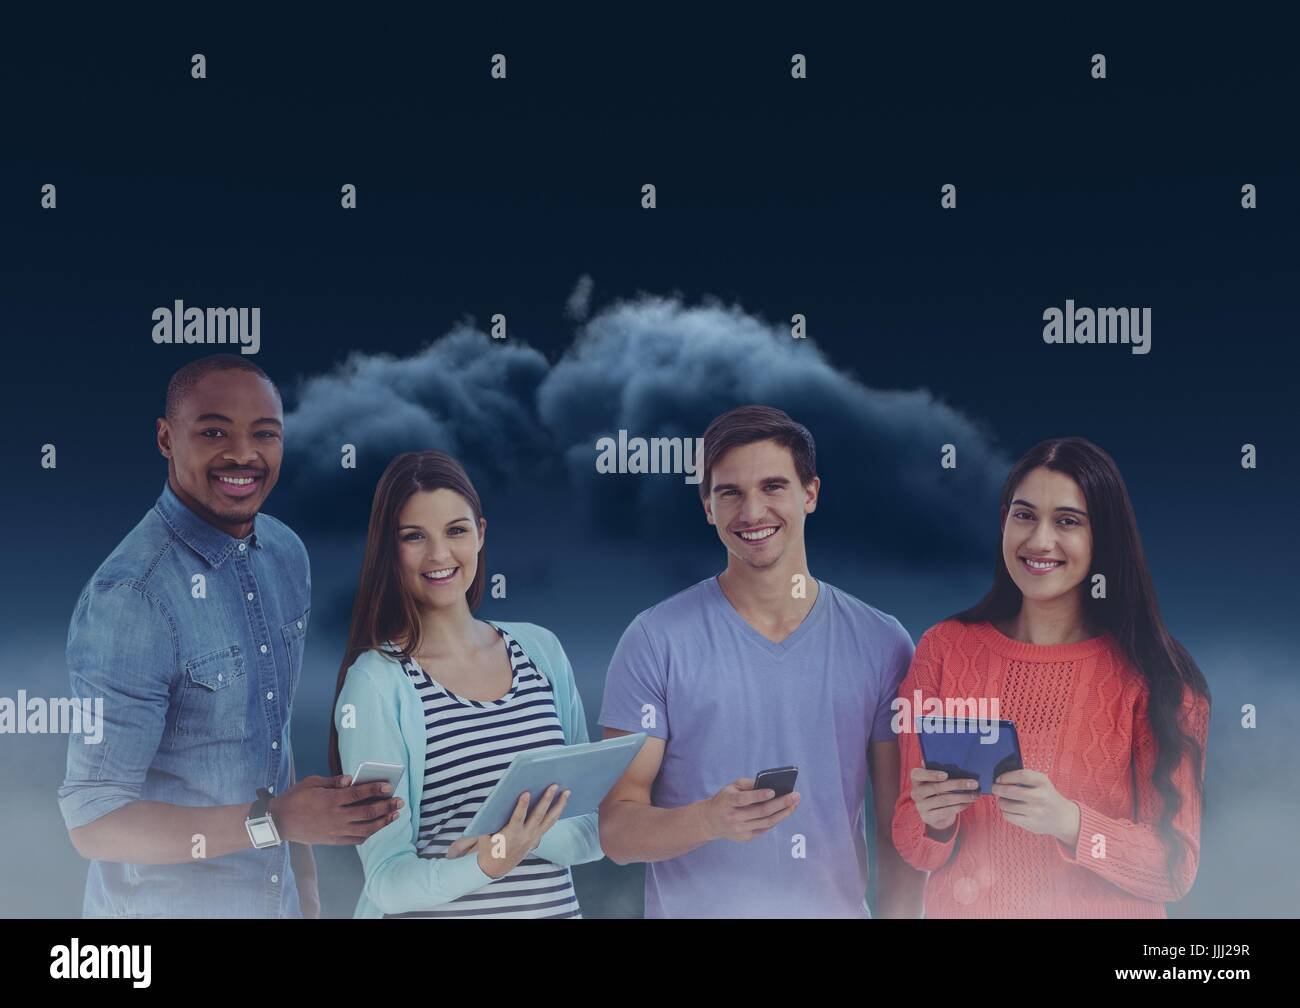 Smiling friends texting in darkness with 3D dark clouds in background - Stock Image